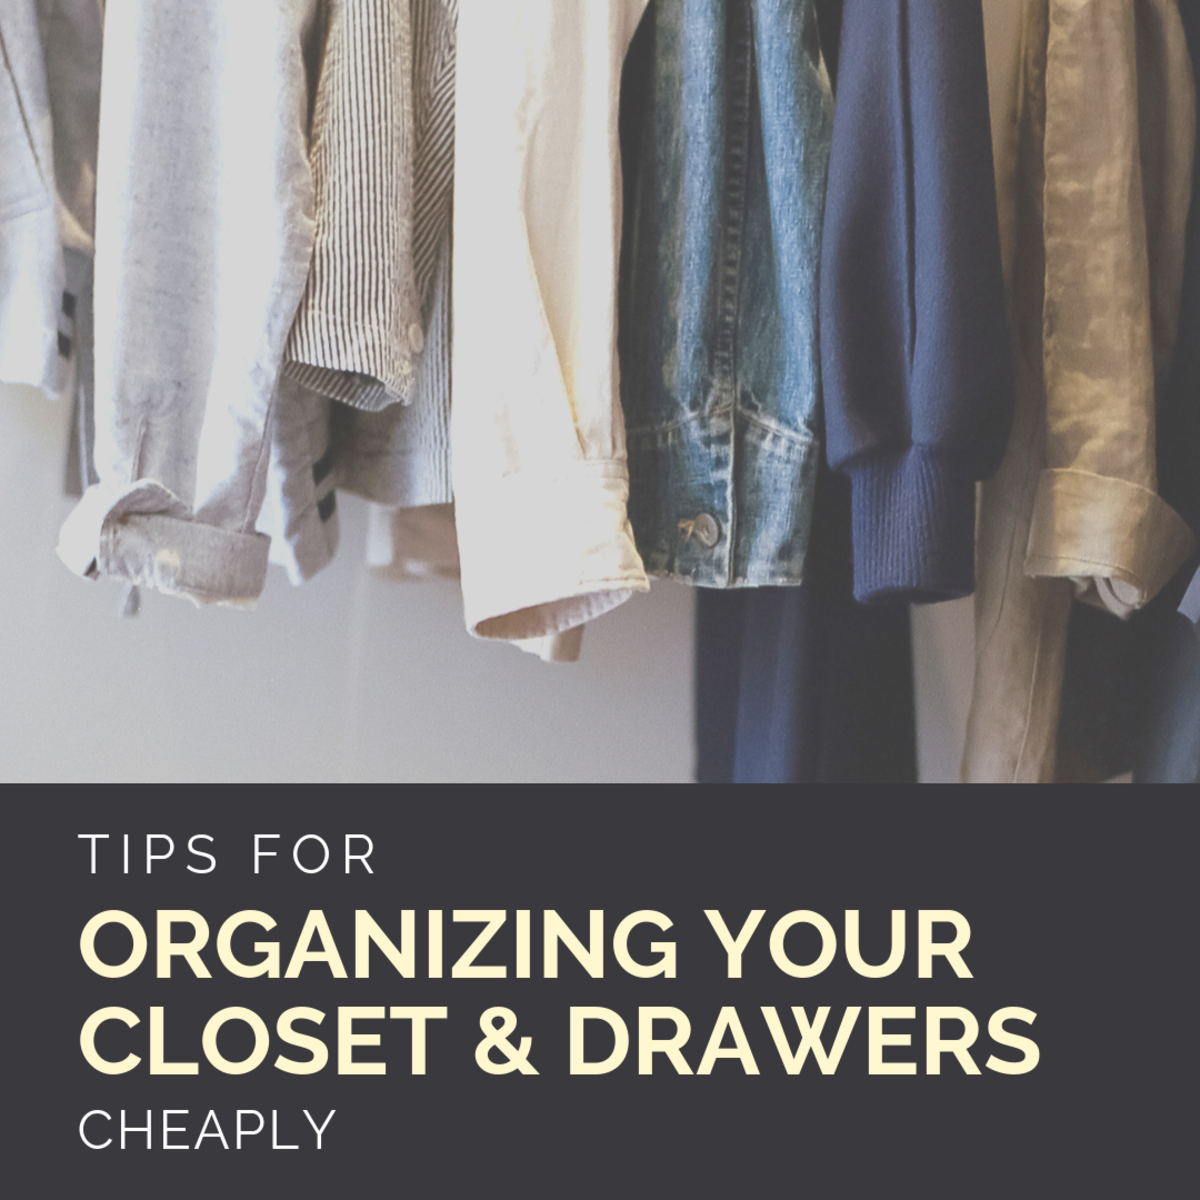 Tips for organizing your closet and drawers affordably.